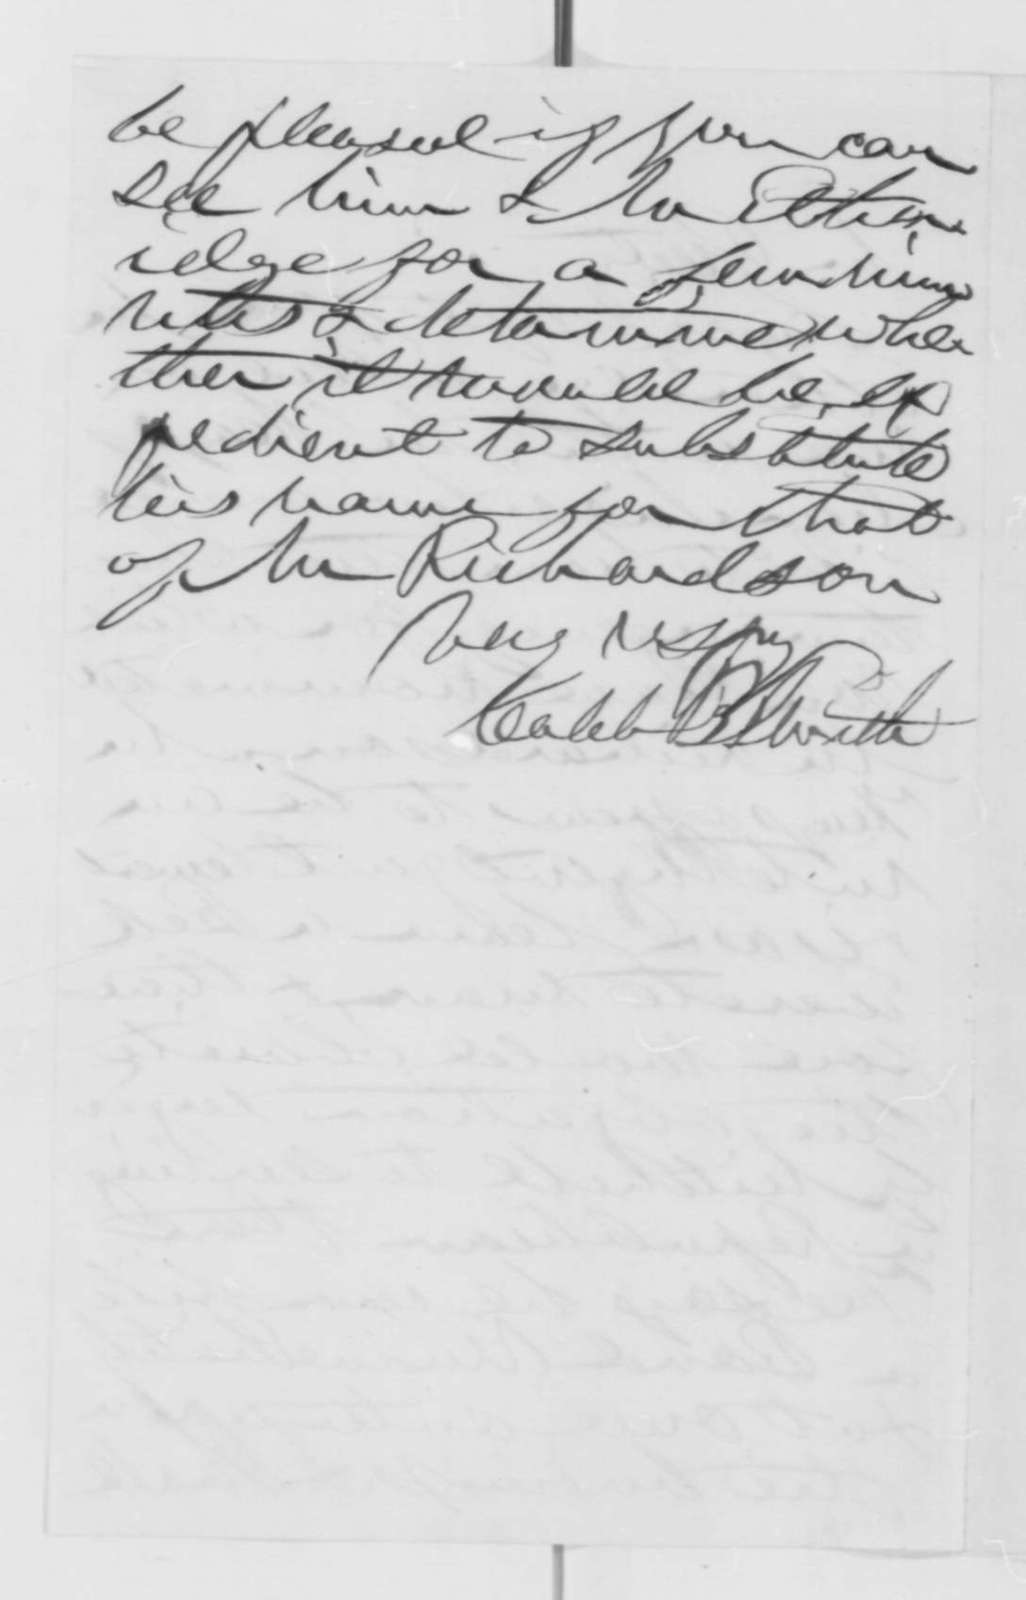 Caleb B. Smith to Abraham Lincoln, [March 1863]  (Appointment)